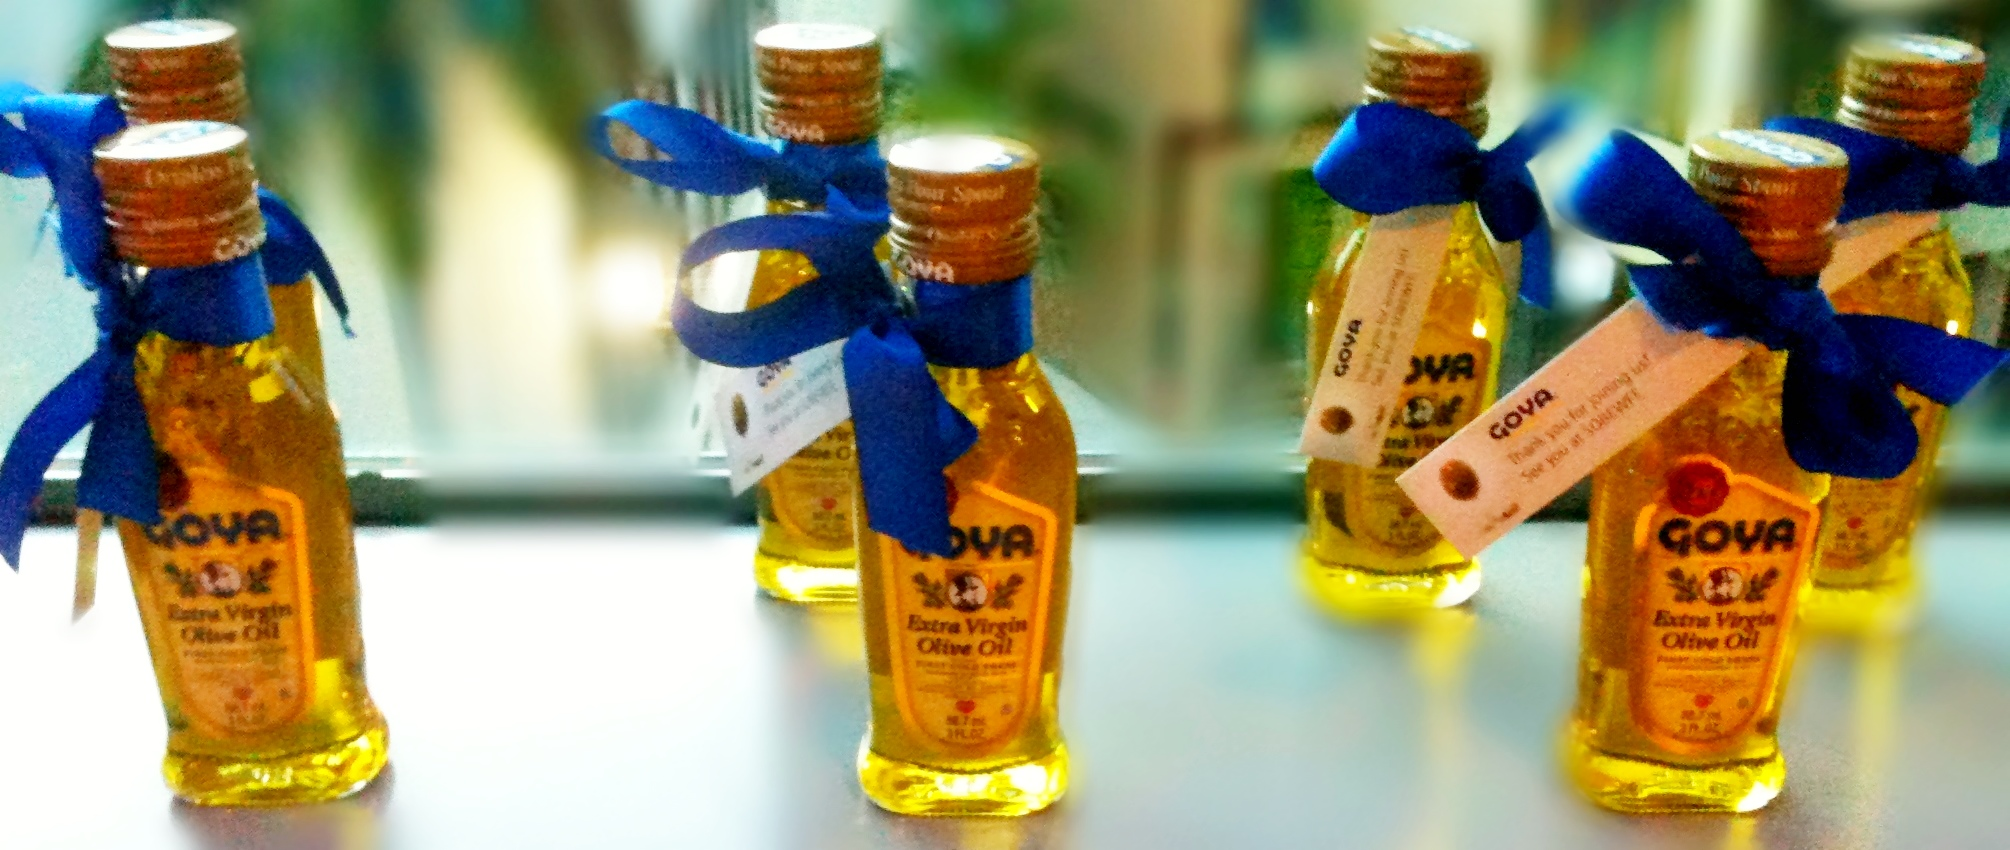 NAFDAC says fake Goya Olive oil is in circulation